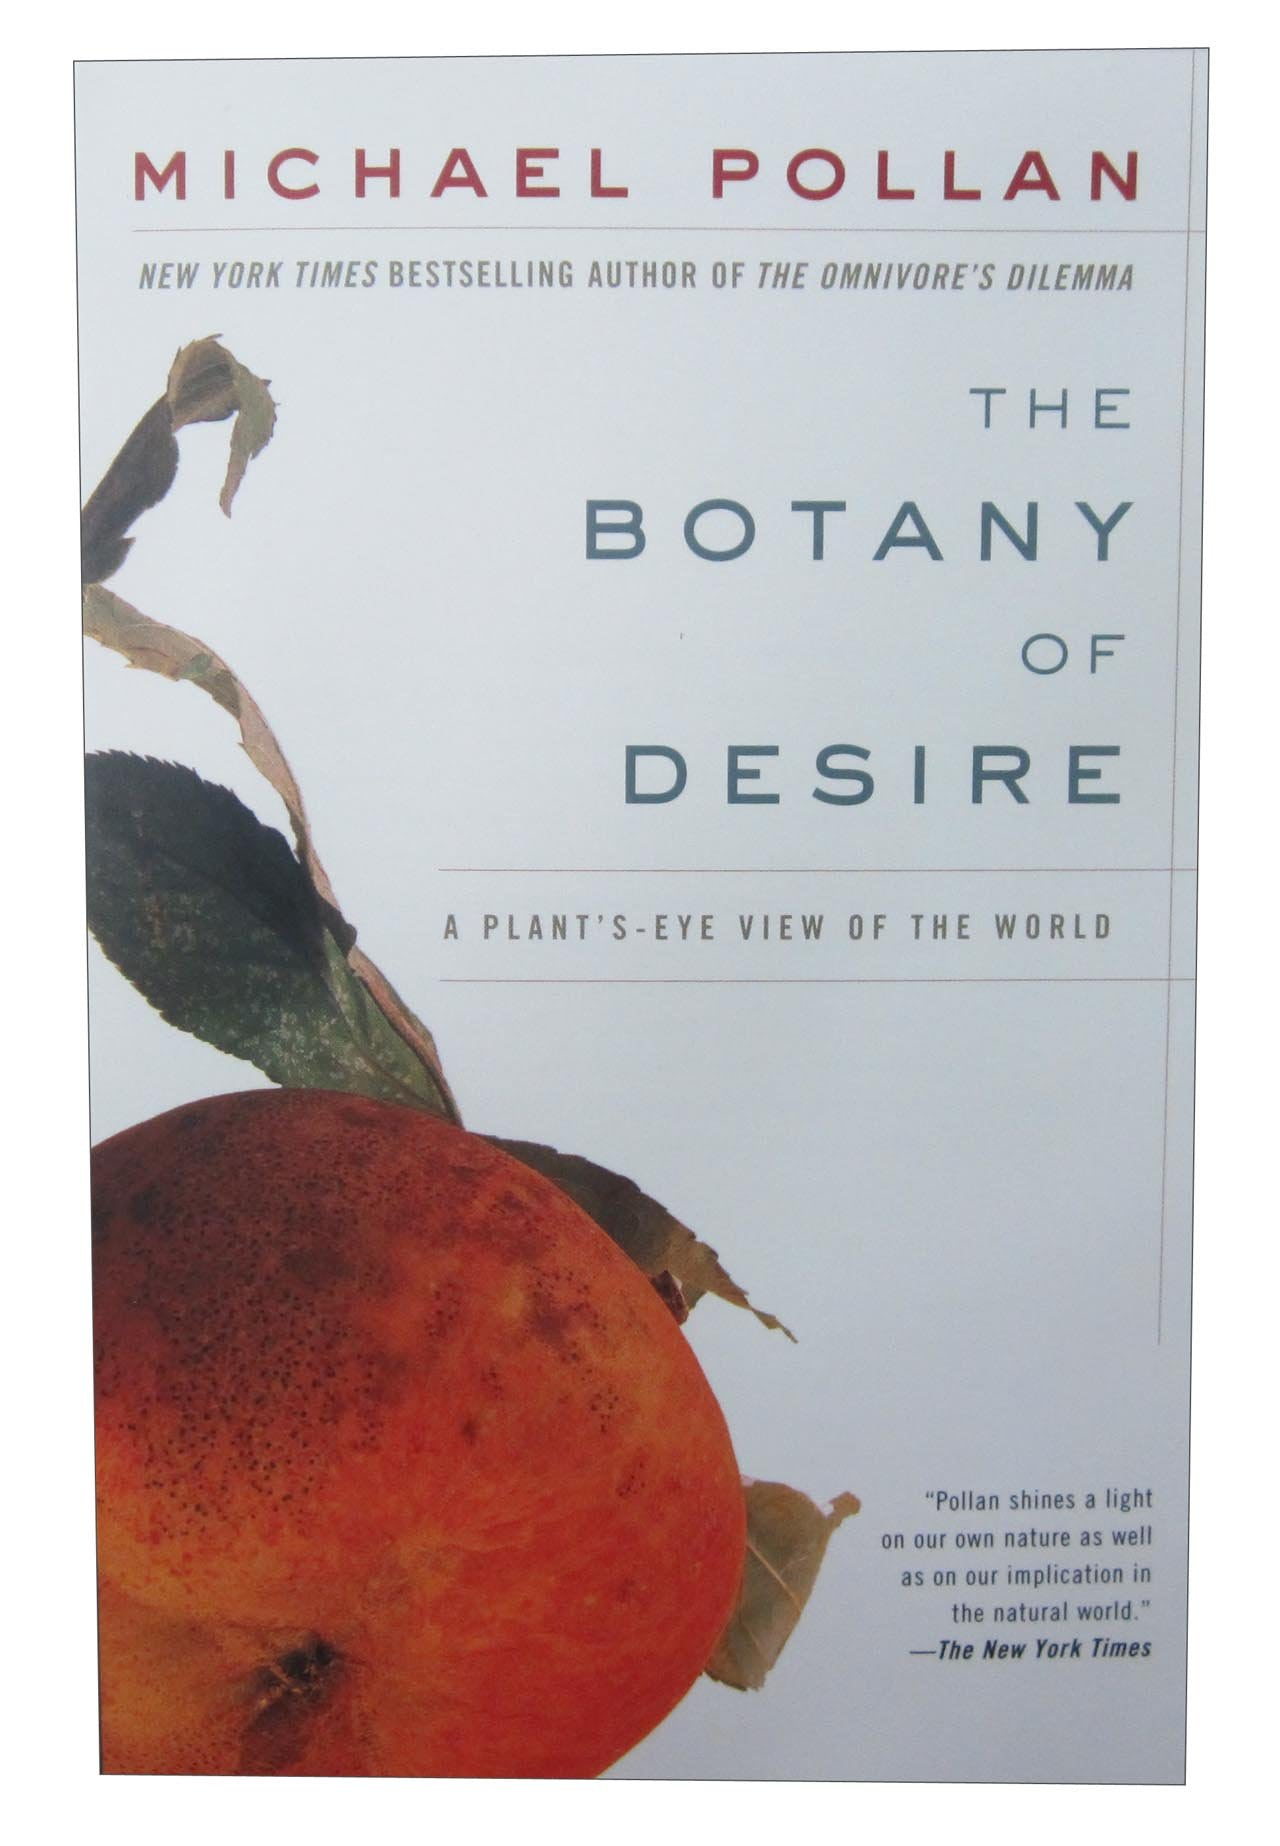 an analysis of the cannabis in the botany of desire a plants eye view of the world Pollan m 2001 the botany of desire: a plant's eye view of the world new york(ny): random house xiii-xxv p diamond r 2005 guns, germs and steel: the fates of human societies.